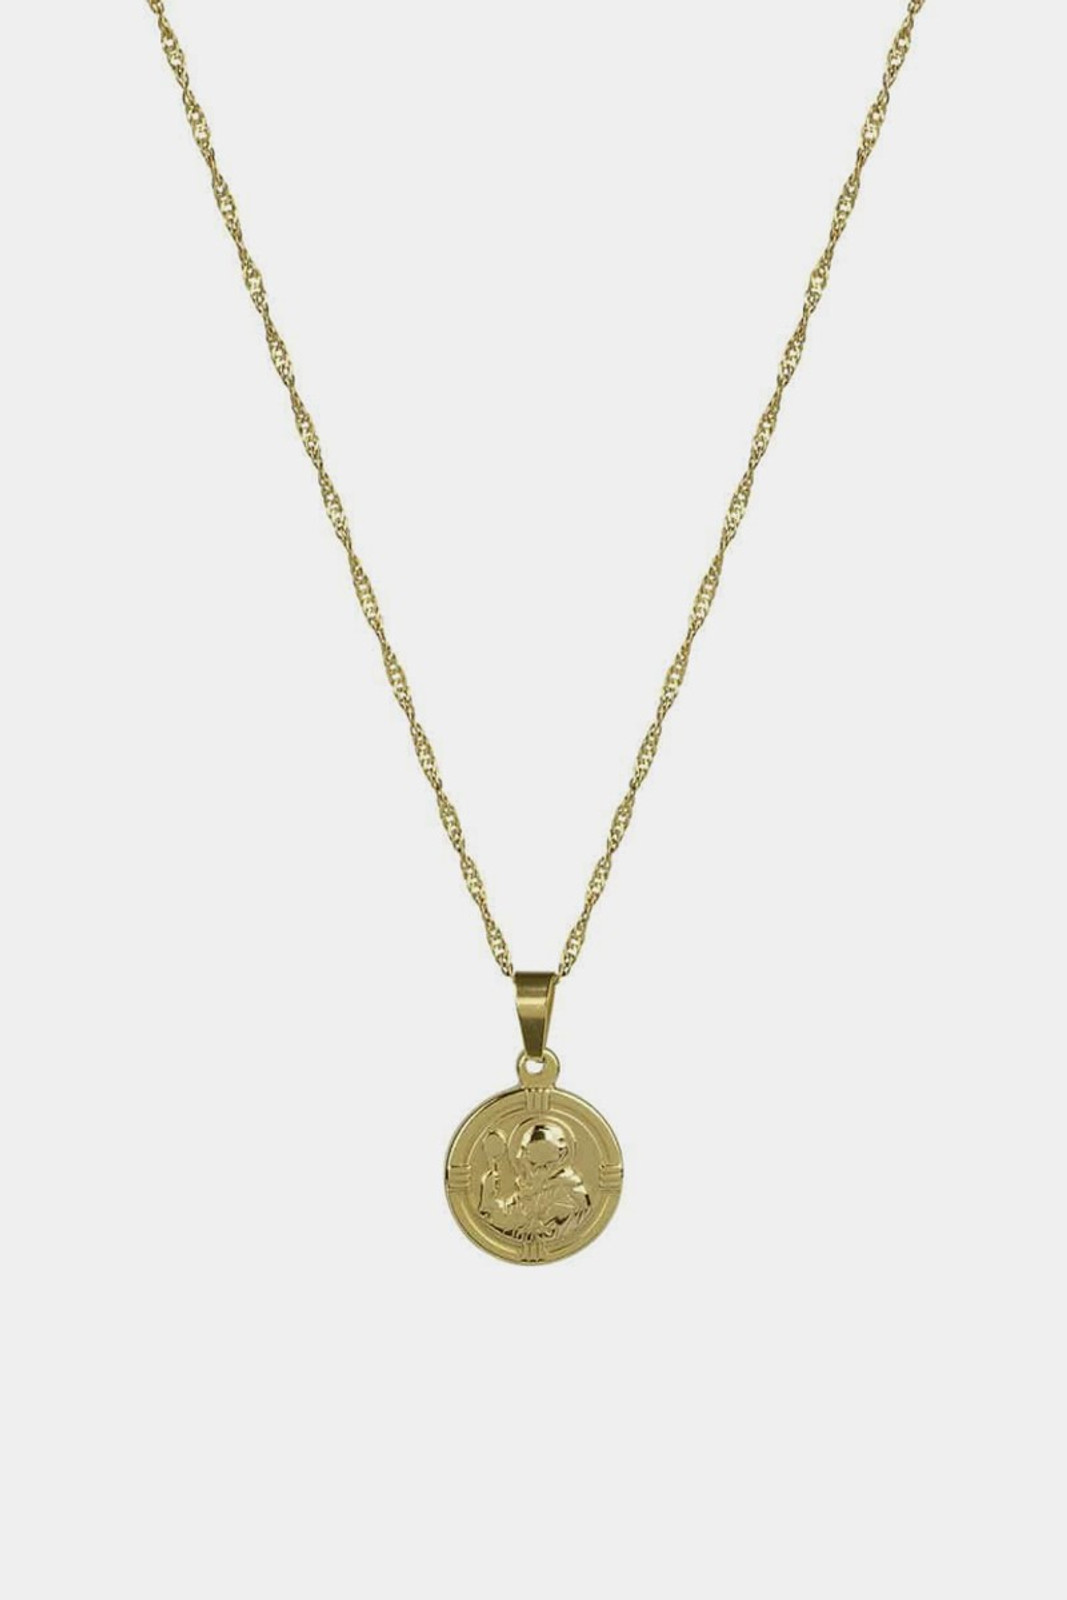 Elka Collective BRIE LEON ST CHRISTOPHER PENDANT GOLD Gold  0